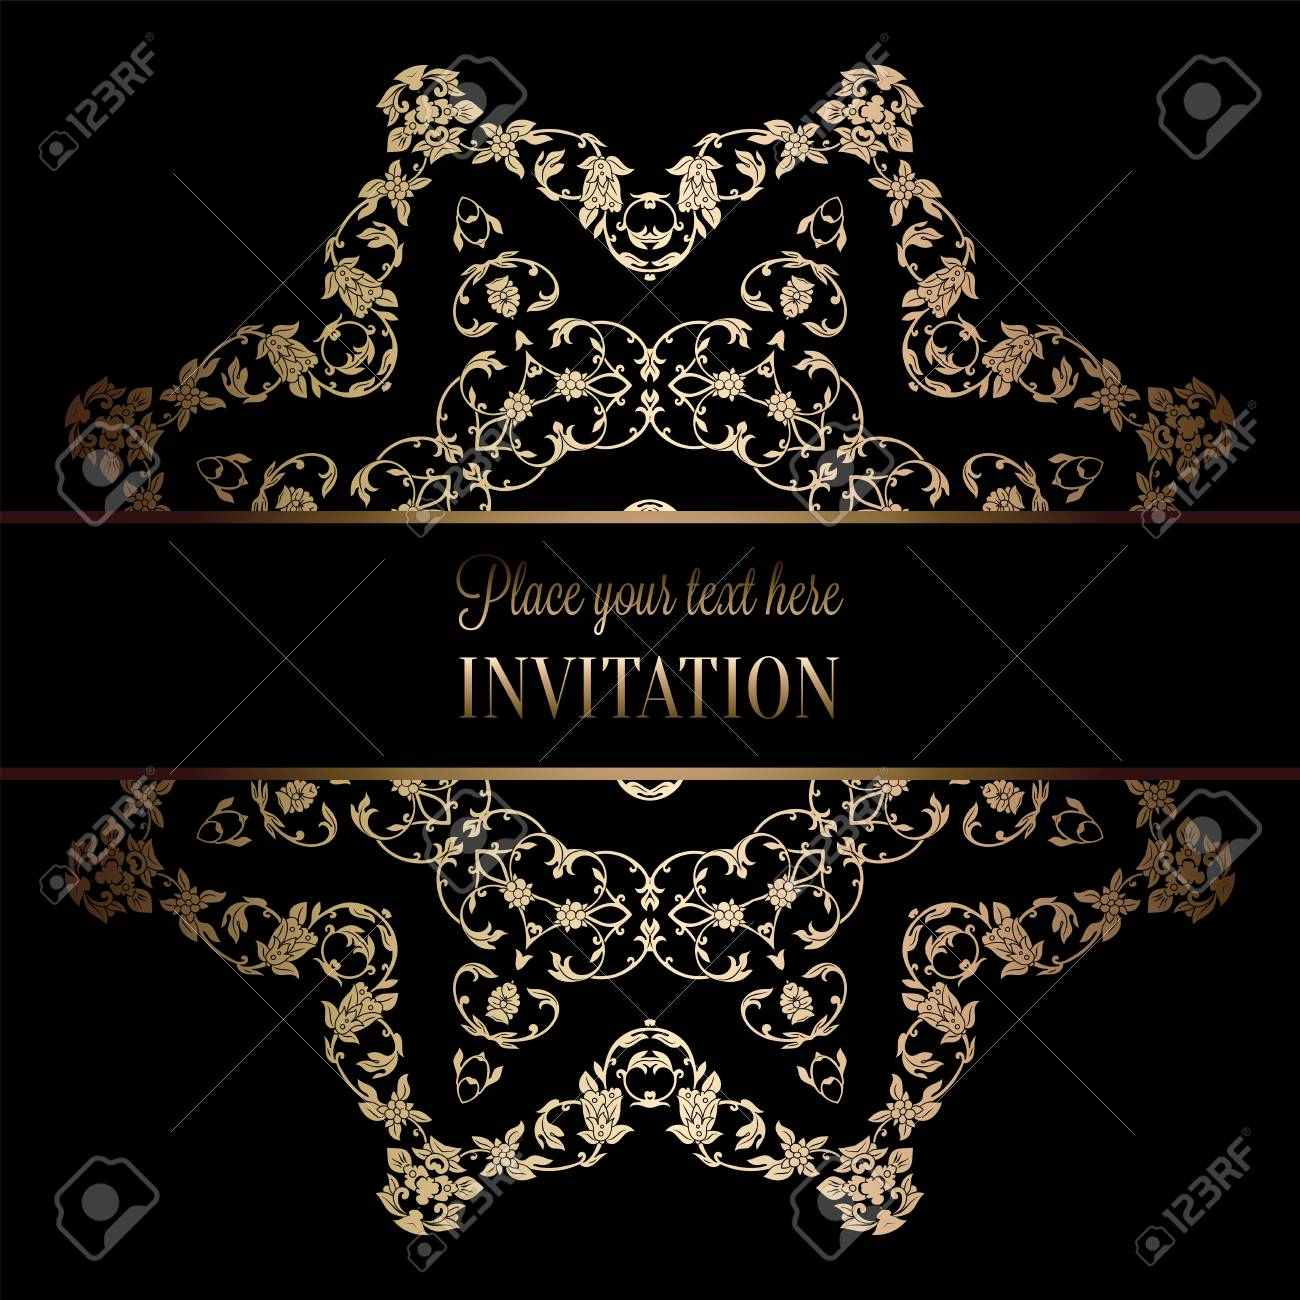 Vintage baroque wedding invitation template with damask background vector vintage baroque wedding invitation template with damask background tradition decoration for wedding vector illustration in black and gold stopboris